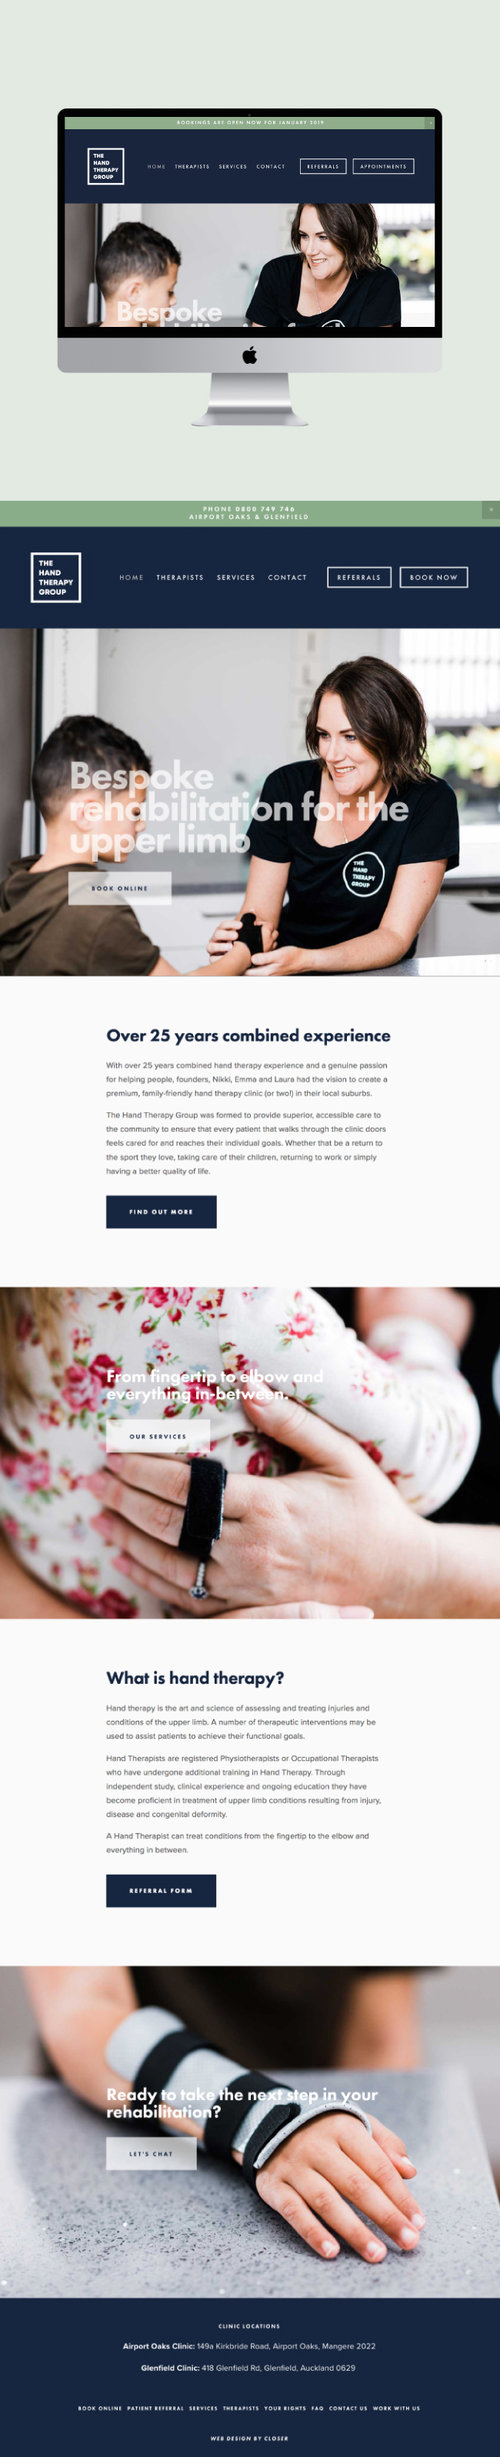 the-hand-therapy-group-custom-website.jpg